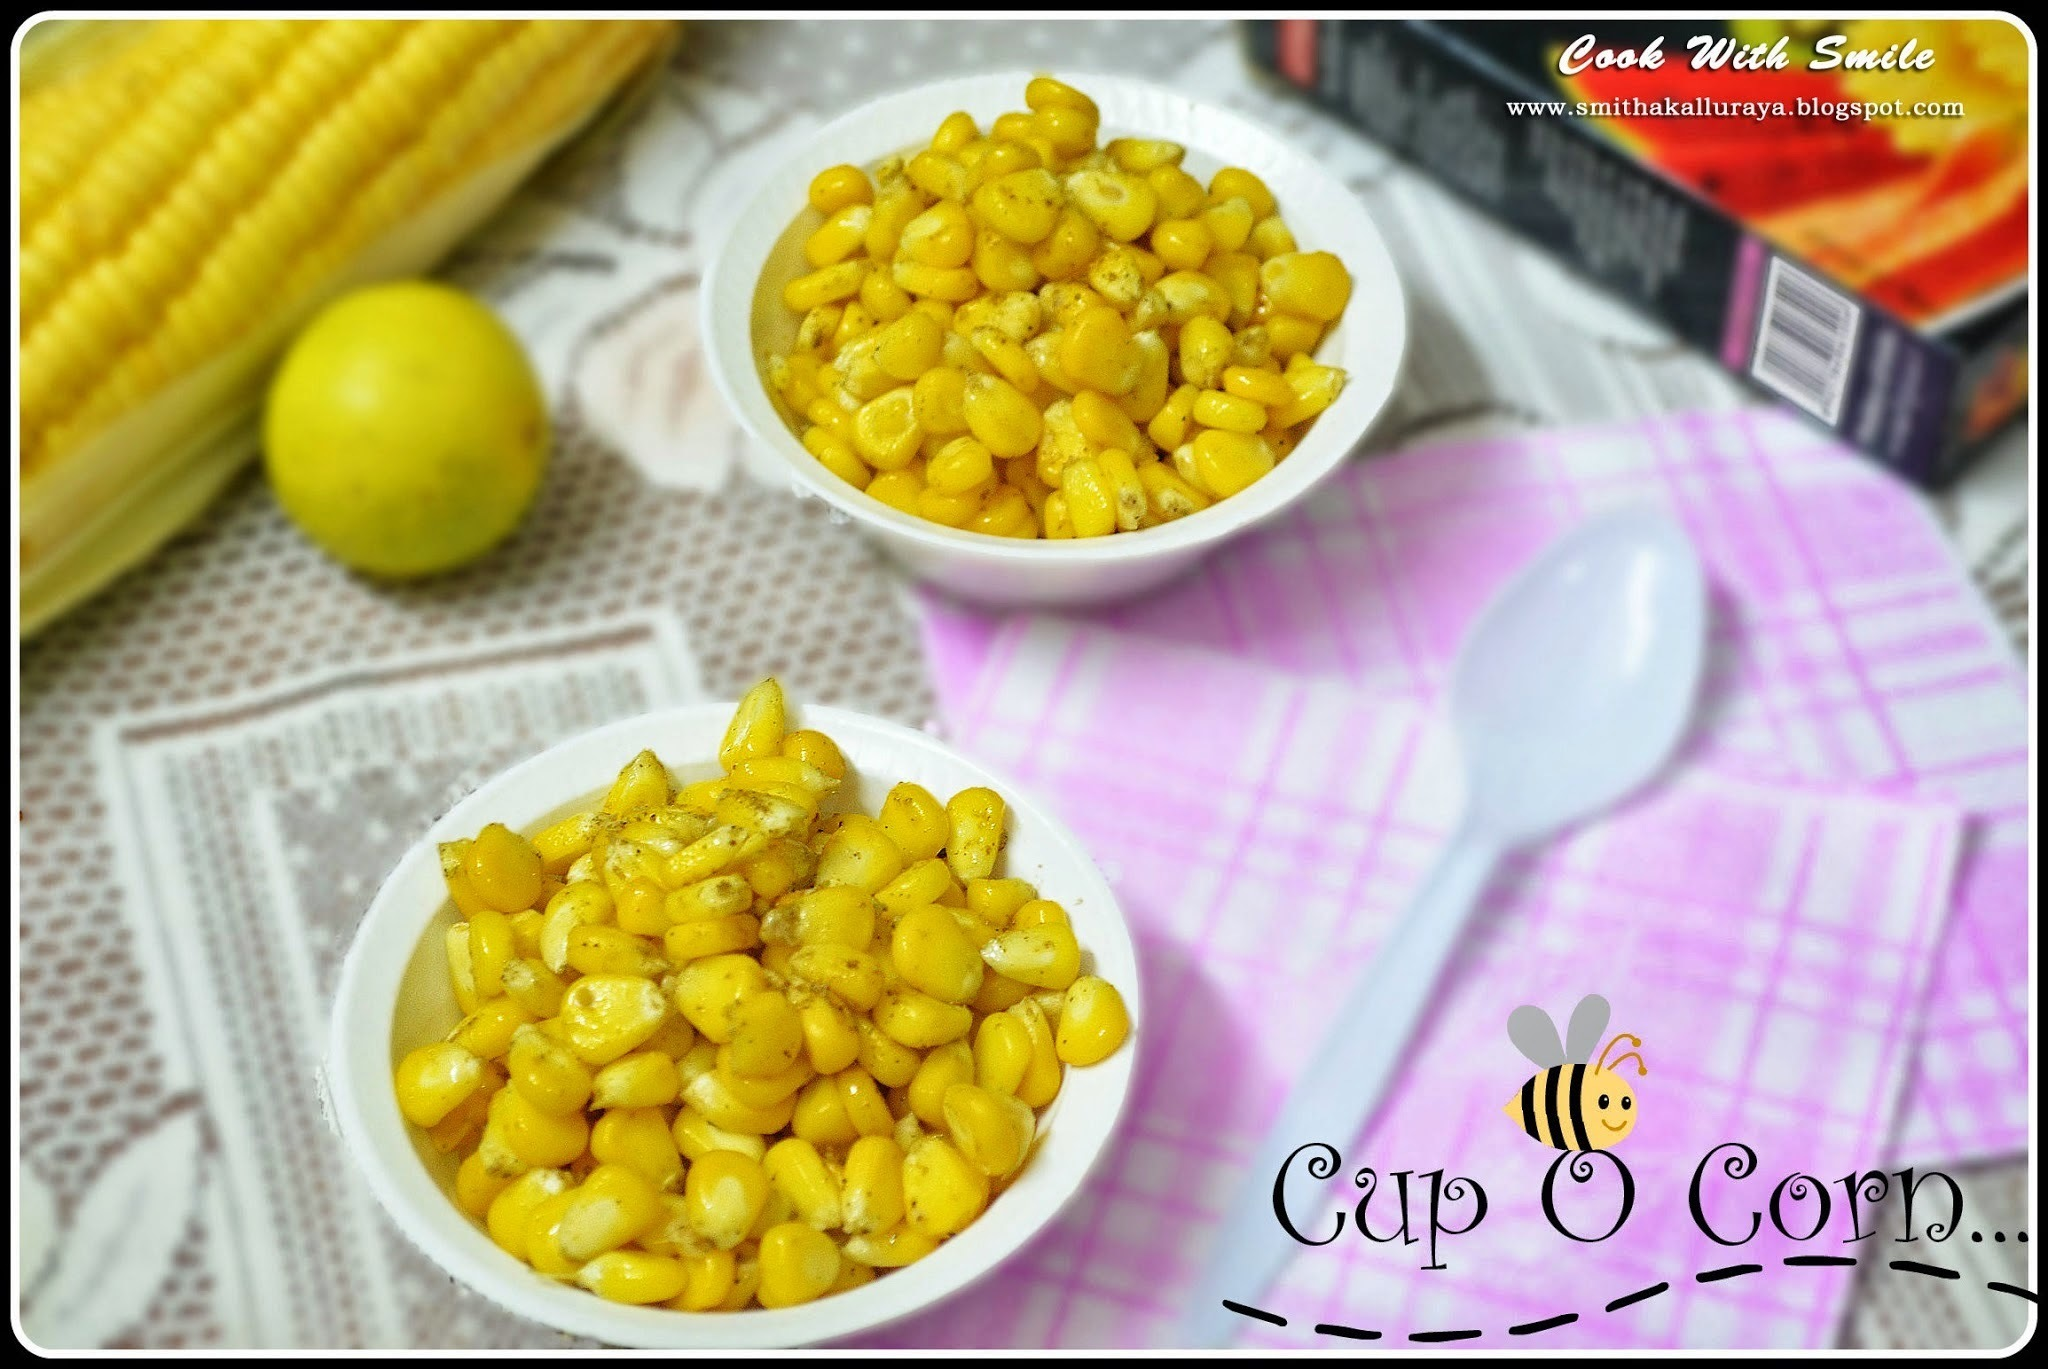 CUP CORN RECIPE / BUTTERED CUP CORN / MASALA CORN - AMERICAN SWEET CORN RECIPE..